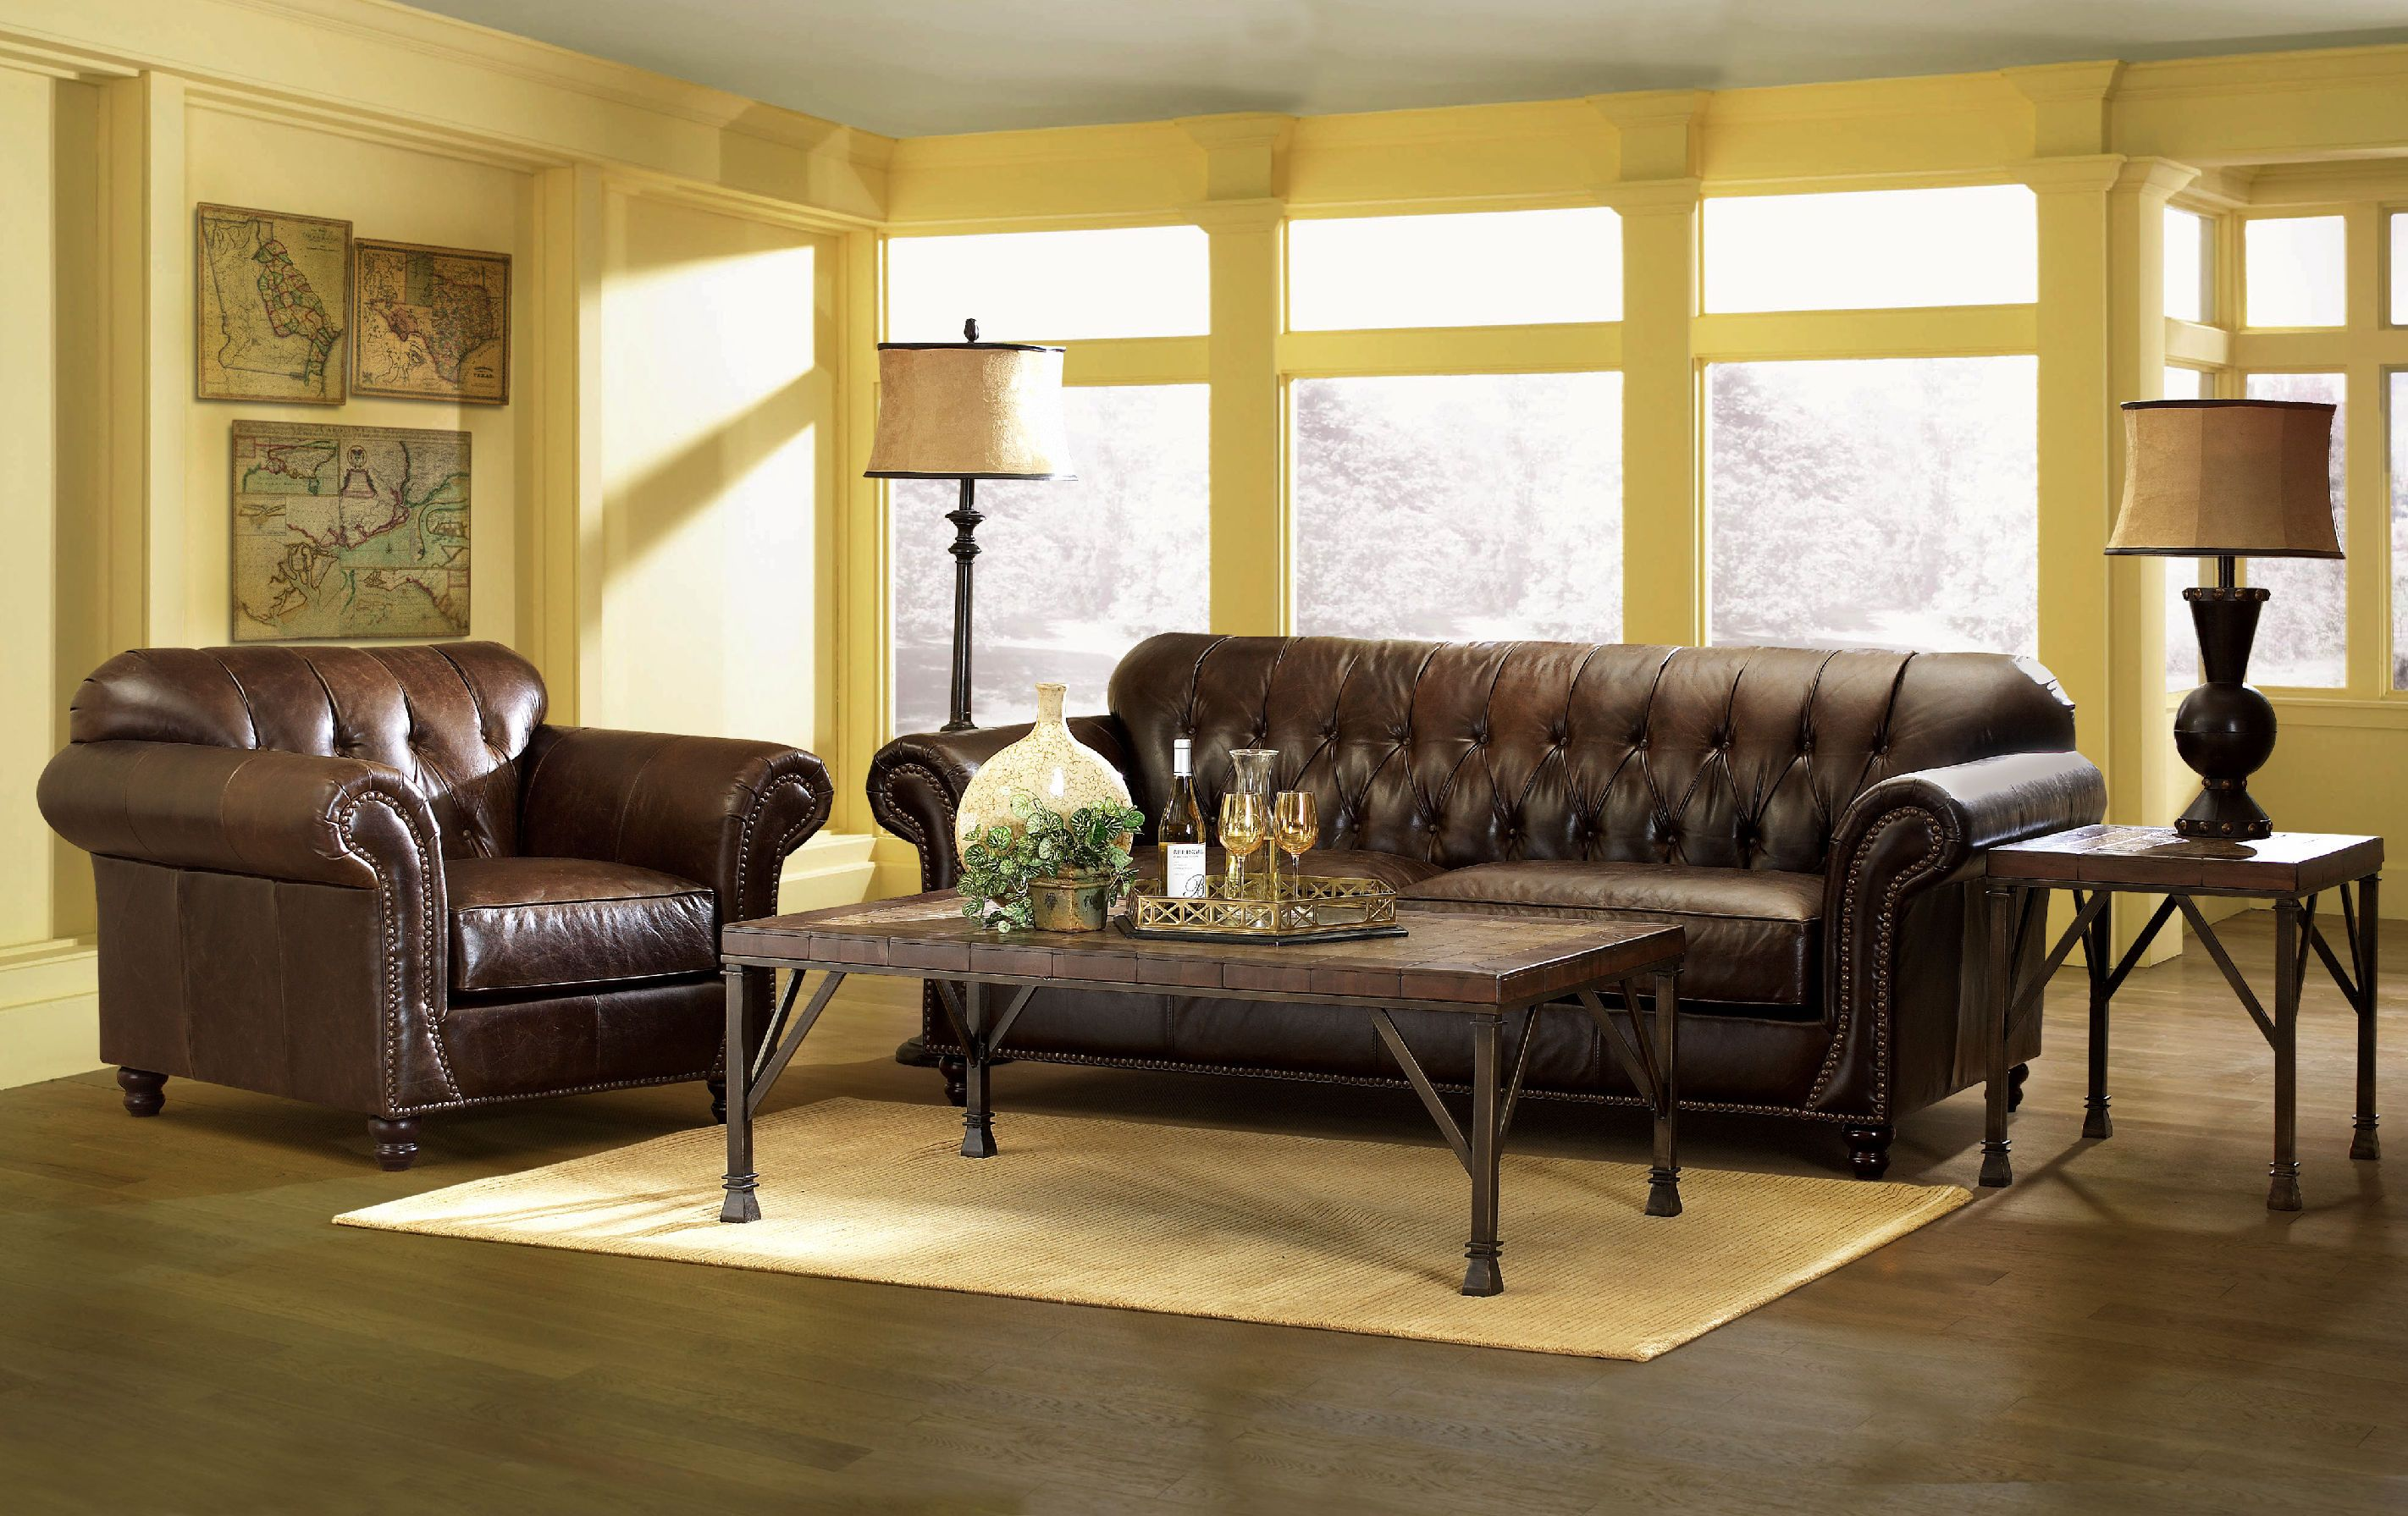 excellent midcentury tufted leather brown couches with shade - Living Room Leather Sofas